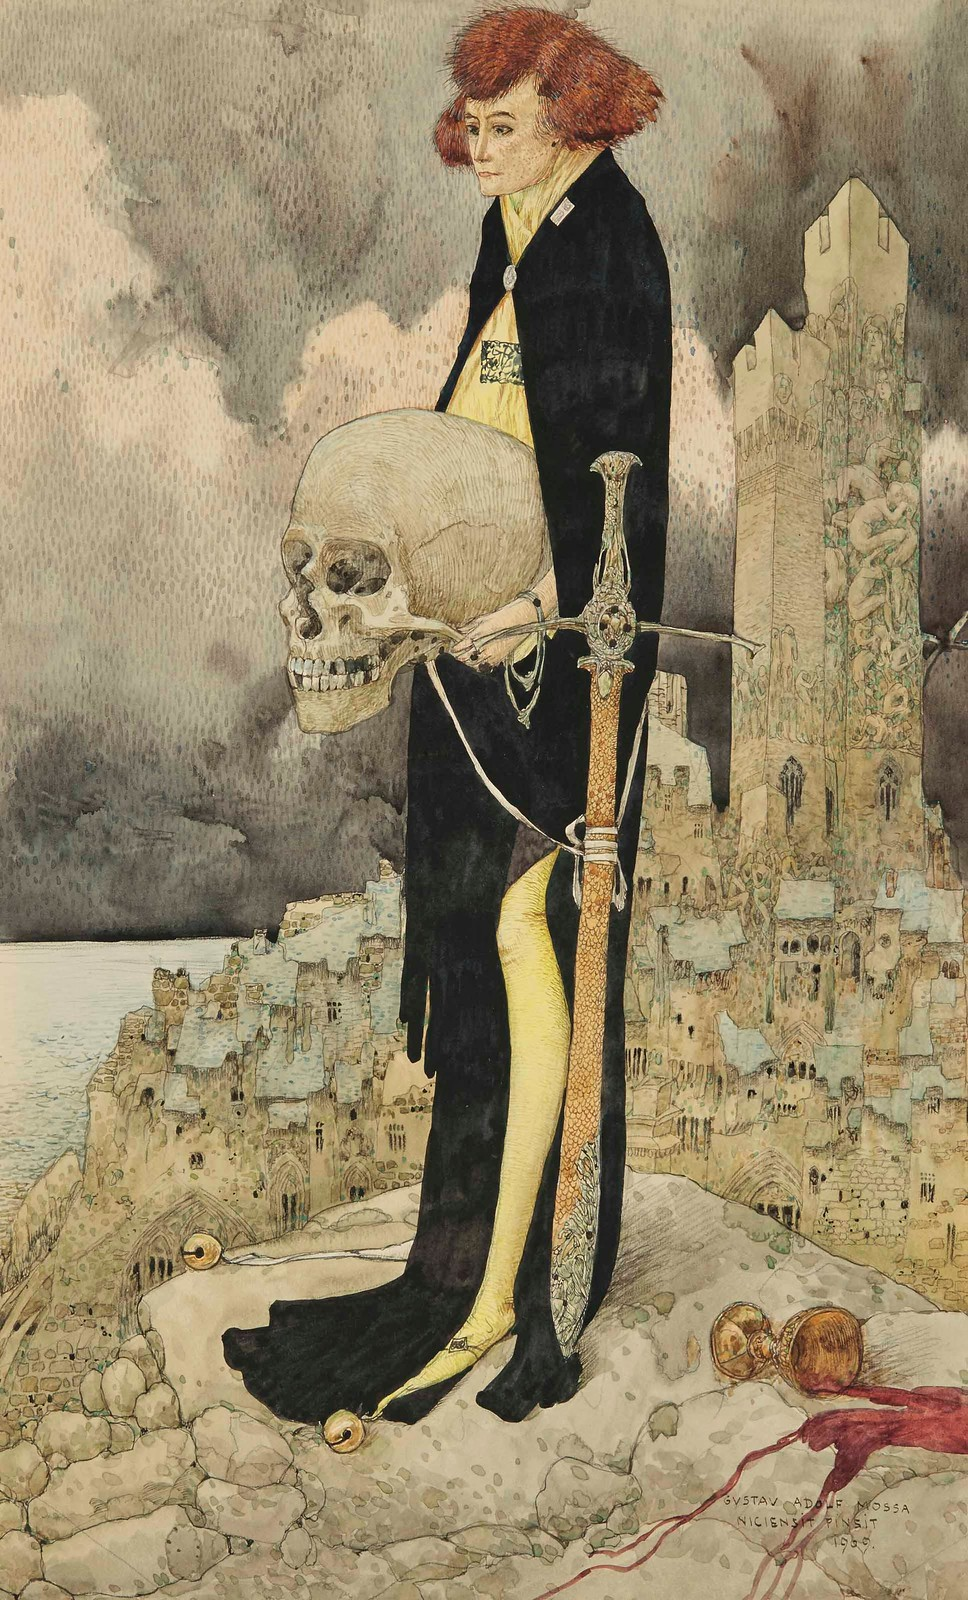 Gustav Adolf Mossa - Hamlet and the Skull, 1909